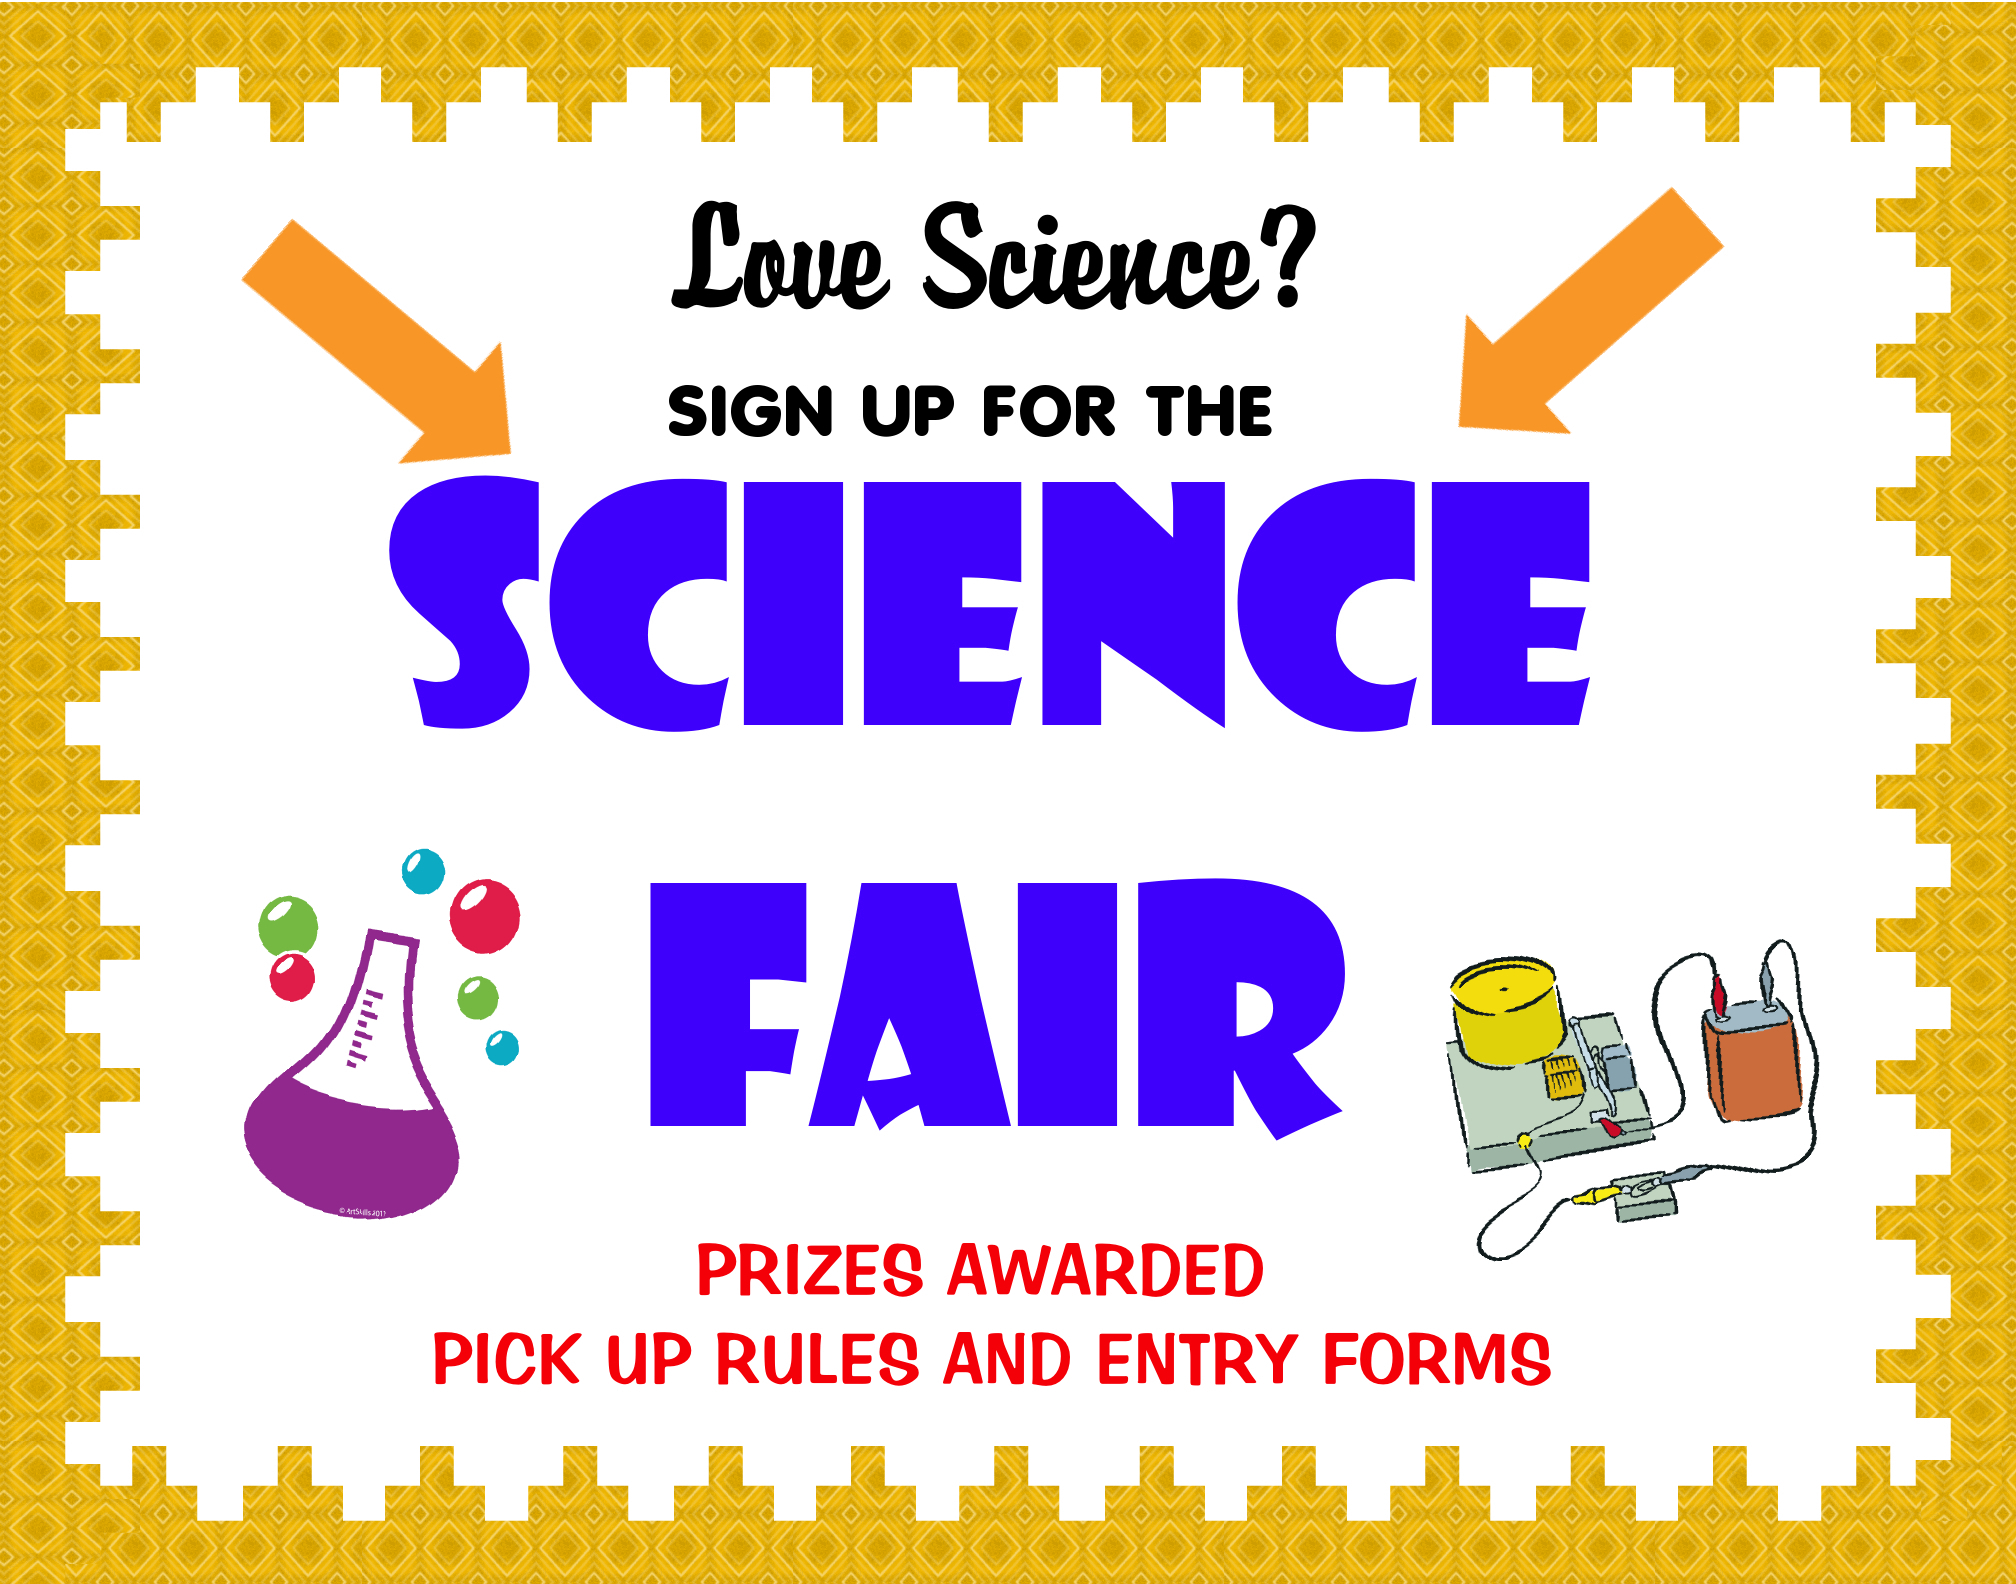 Make a science fair project | Science fair sign poster ideas | Science ...